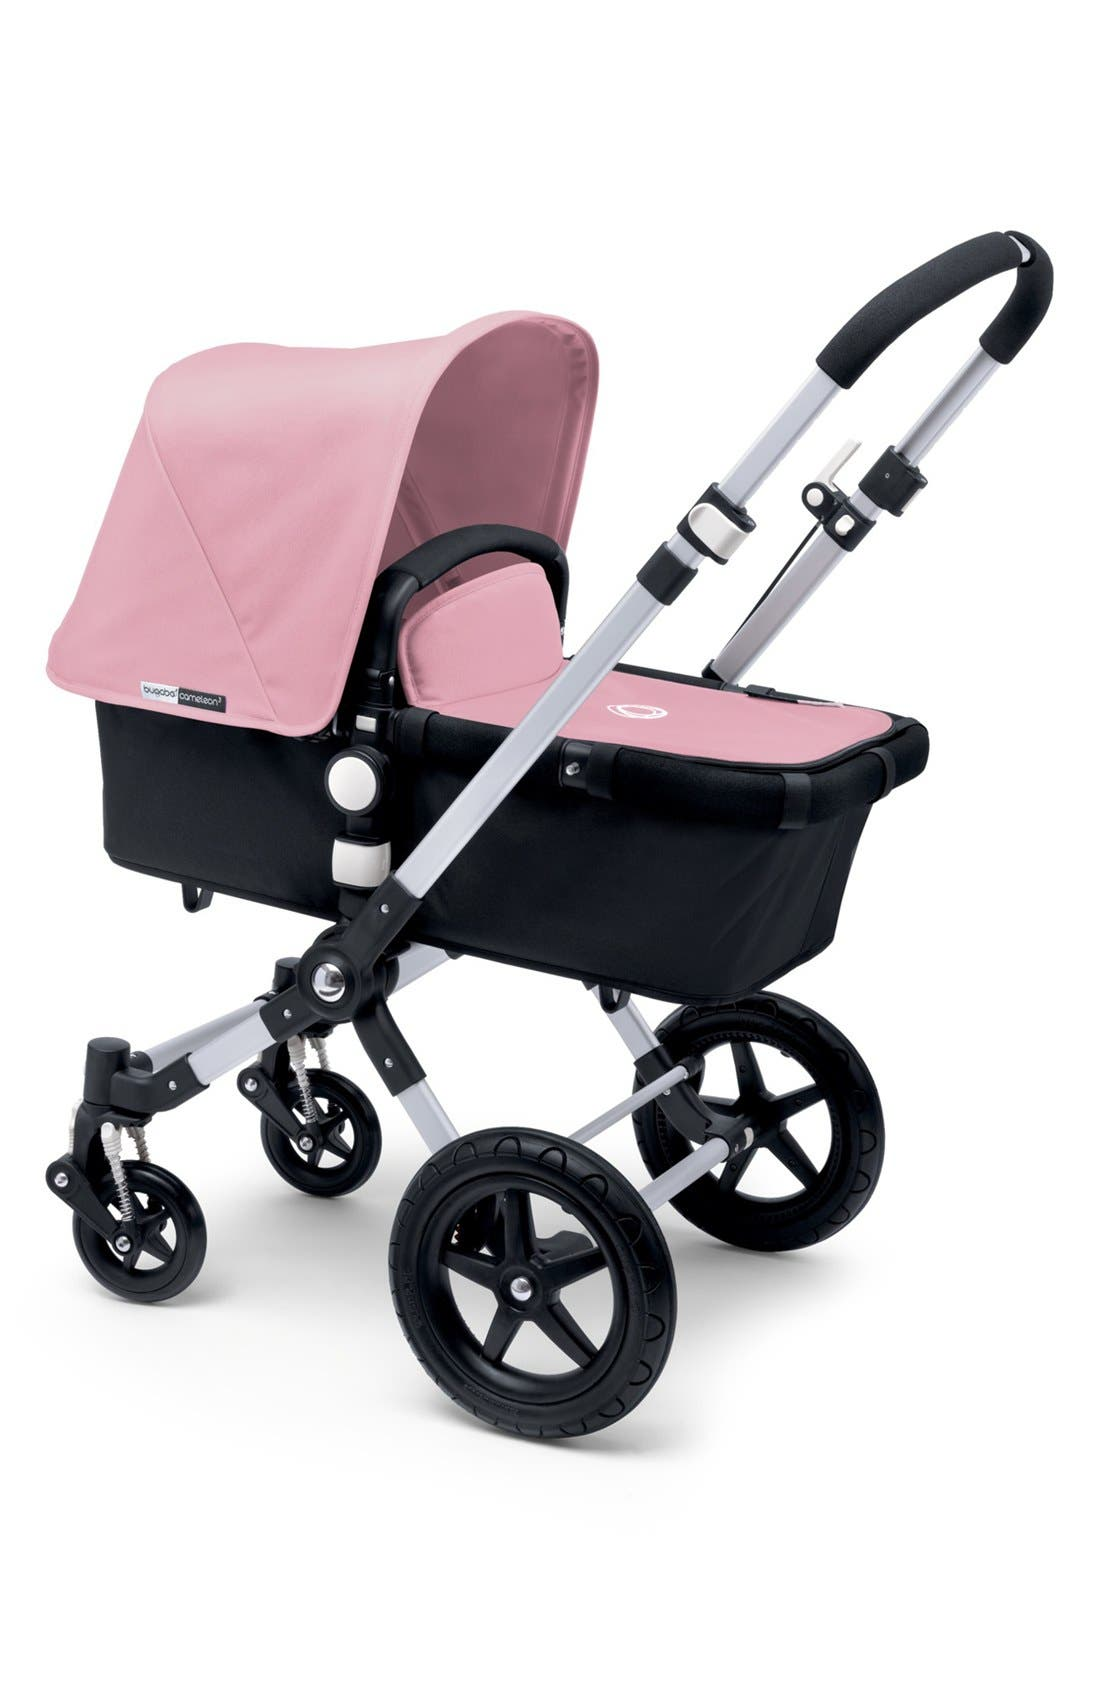 Bugaboo u0027Cameleon³u0027 Tailored Fabric Set with Extendable Canopy  sc 1 st  Nordstrom & Pink Bugaboo Strollers u0026 Stroller Accessories | Nordstrom